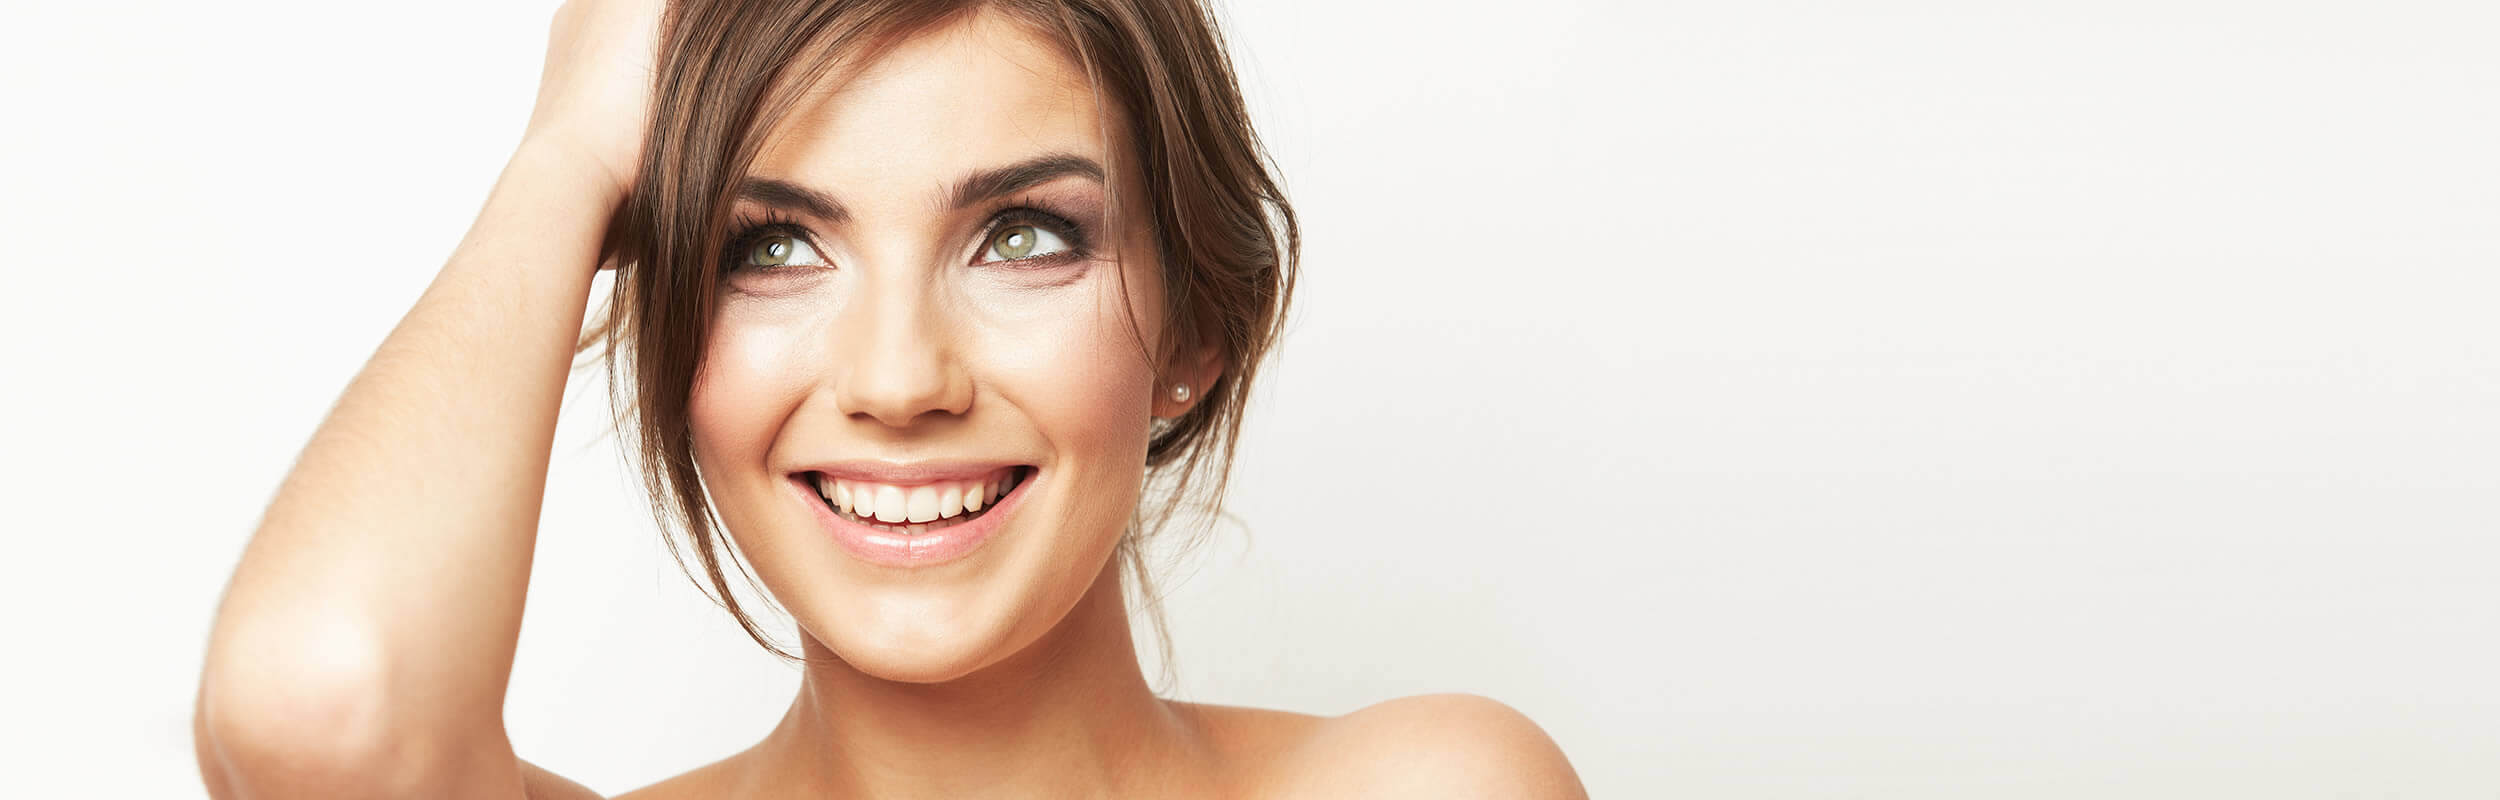 Aura Facial Rejuvenation Services in Kingston and Wimbledon